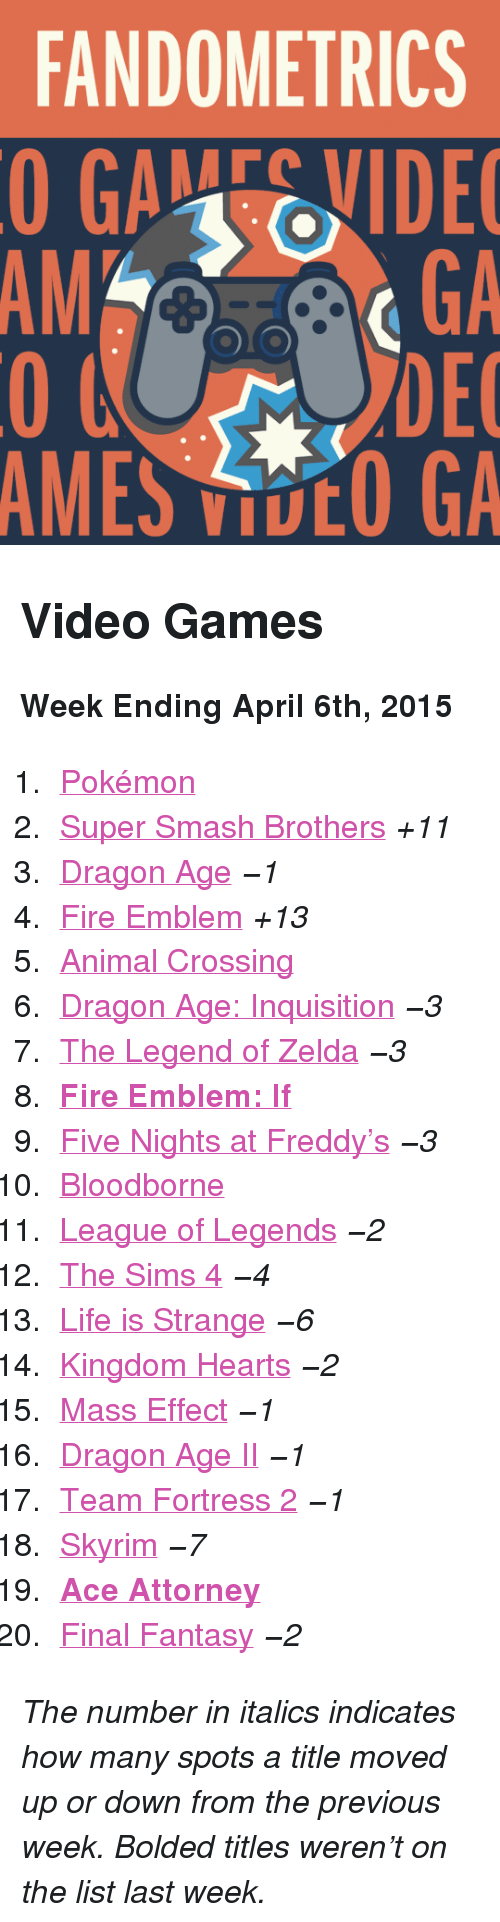 """Fire, League of Legends, and Life: FANDOMETRICS  GAEVIDE  GA  DEC  AMES VOO GA  AM <h2>Video Games</h2><p><b>Week Ending April 6th, 2015</b></p><ol><li><a href=""""http://www.tumblr.com/search/pokemon"""">Pokémon</a></li>  <li><a href=""""http://www.tumblr.com/search/super%20smash%20bros"""">Super Smash Brothers</a><i>+11</i></li>  <li><a href=""""http://www.tumblr.com/search/dragon%20age"""">Dragon Age</a><i>−1</i></li>  <li><a href=""""http://www.tumblr.com/search/fire%20emblem"""">Fire Emblem</a><i>+13</i></li>  <li><a href=""""http://www.tumblr.com/search/acnl"""">Animal Crossing</a></li>  <li><a href=""""http://www.tumblr.com/search/dragon%20age%20inquisition"""">Dragon Age: Inquisition</a><i>−3</i></li>  <li><a href=""""http://www.tumblr.com/search/legend%20of%20zelda"""">The Legend of Zelda</a><i>−3</i></li>  <li><a href=""""http://www.tumblr.com/search/fire%20emblem%20if""""><b>Fire Emblem: If</b></a></li>  <li><a href=""""http://www.tumblr.com/search/five%20nights%20at%20freddy's"""">Five Nights at Freddy&rsquo;s</a><i>−3</i></li>  <li><a href=""""http://www.tumblr.com/search/bloodborne"""">Bloodborne</a></li>  <li><a href=""""http://www.tumblr.com/search/league%20of%20legends"""">League of Legends</a><i>−2</i></li>  <li><a href=""""http://www.tumblr.com/search/sims%204"""">The Sims 4</a><i>−4</i></li>  <li><a href=""""http://www.tumblr.com/search/life%20is%20strange"""">Life is Strange</a><i>−6</i></li>  <li><a href=""""http://www.tumblr.com/search/kingdom%20hearts"""">Kingdom Hearts</a><i>−2</i></li>  <li><a href=""""http://www.tumblr.com/search/mass%20effect"""">Mass Effect</a><i>−1</i></li>  <li><a href=""""http://www.tumblr.com/search/dragon%20age%202"""">Dragon Age II</a><i>−1</i></li>  <li><a href=""""http://www.tumblr.com/search/tf2"""">Team Fortress 2</a><i>−1</i></li>  <li><a href=""""http://www.tumblr.com/search/skyrim"""">Skyrim</a><i>−7</i></li>  <li><a href=""""http://www.tumblr.com/search/ace%20attorney""""><b>Ace Attorney</b></a></li>  <li><a href=""""http://www.tumblr.com/search/final%20fantasy"""">Final Fantasy</a><i>−2</i></li></ol><p><i>The number in ital"""